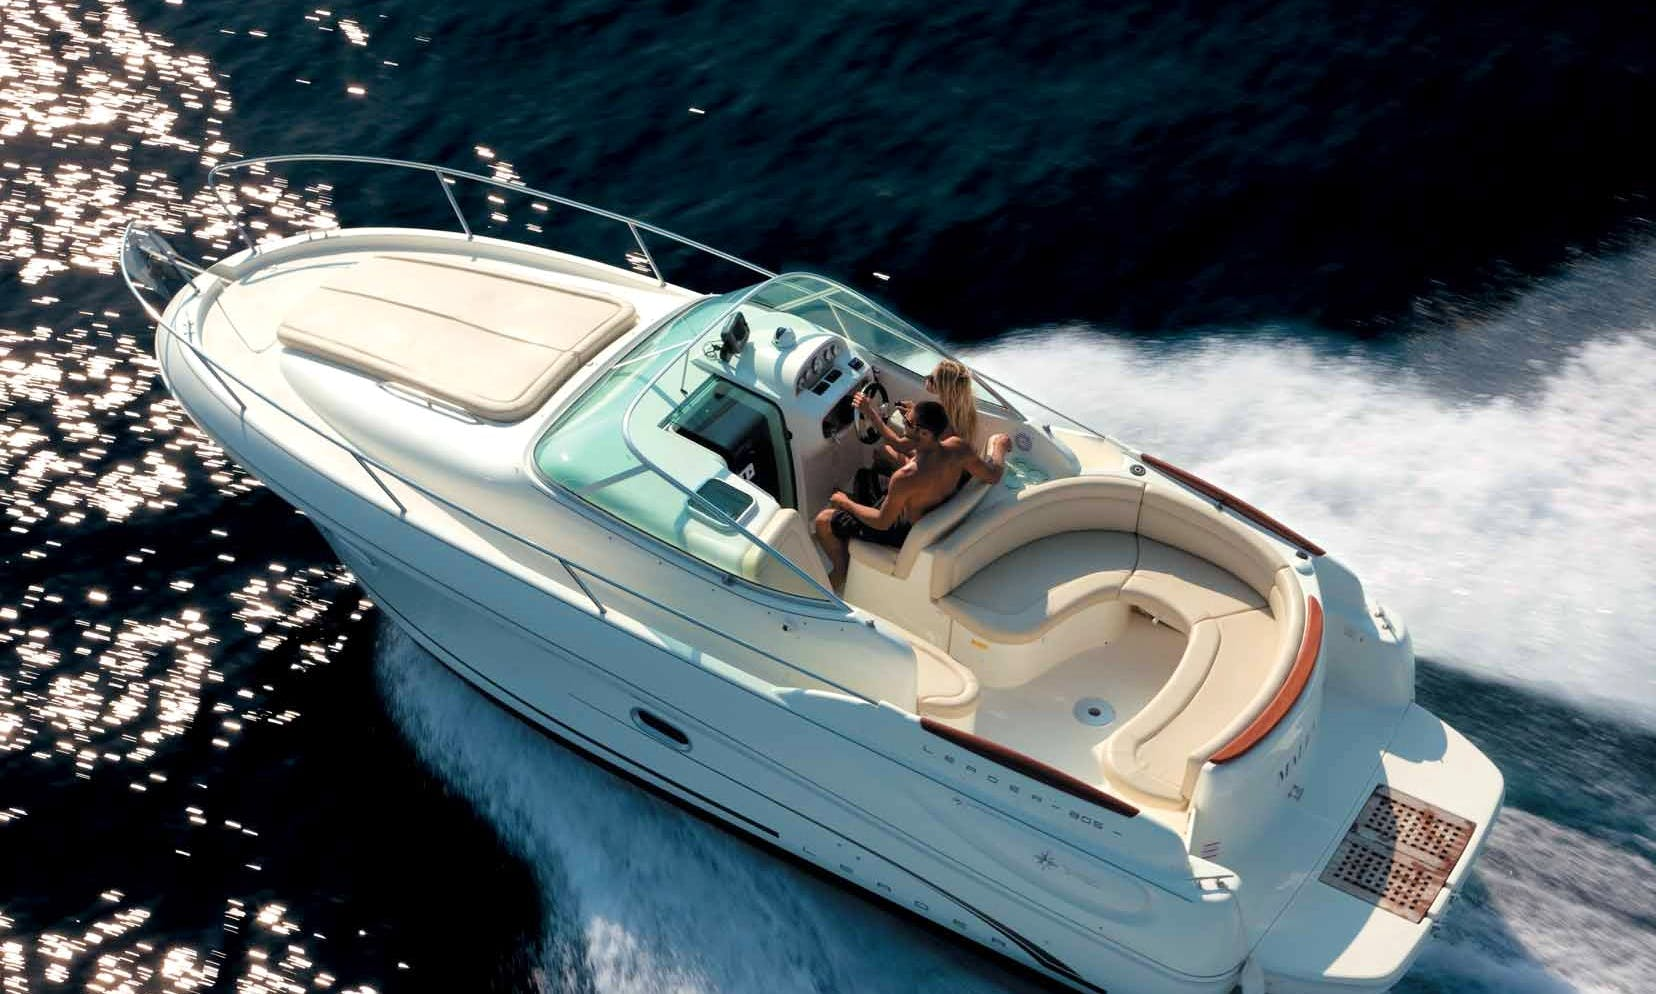 Jeanneau Leader 805 Motor Yacht Rental in Altea, Spain